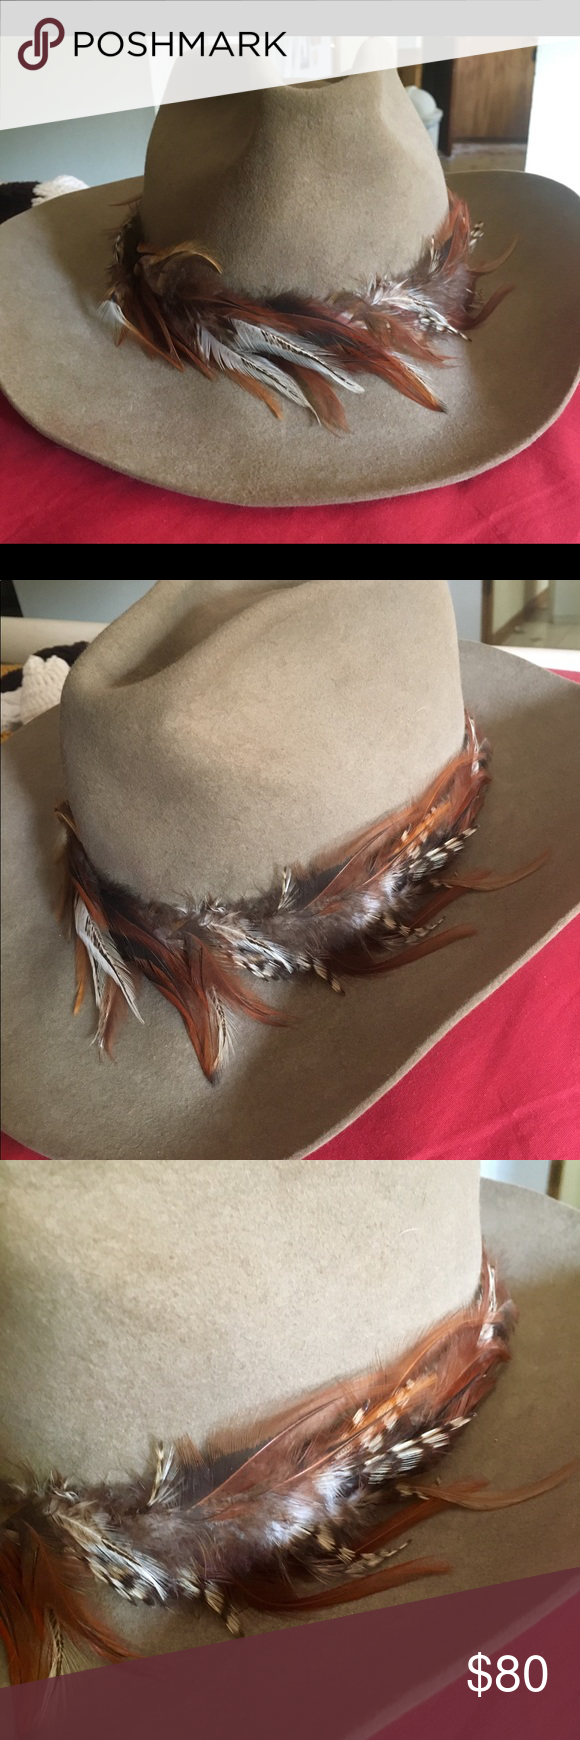 How to clean pheasant feathers - Stetson Cowboy Hat Stetson Cowboy Hat With Pheasant Feathers Interior Could Use A Light Clean